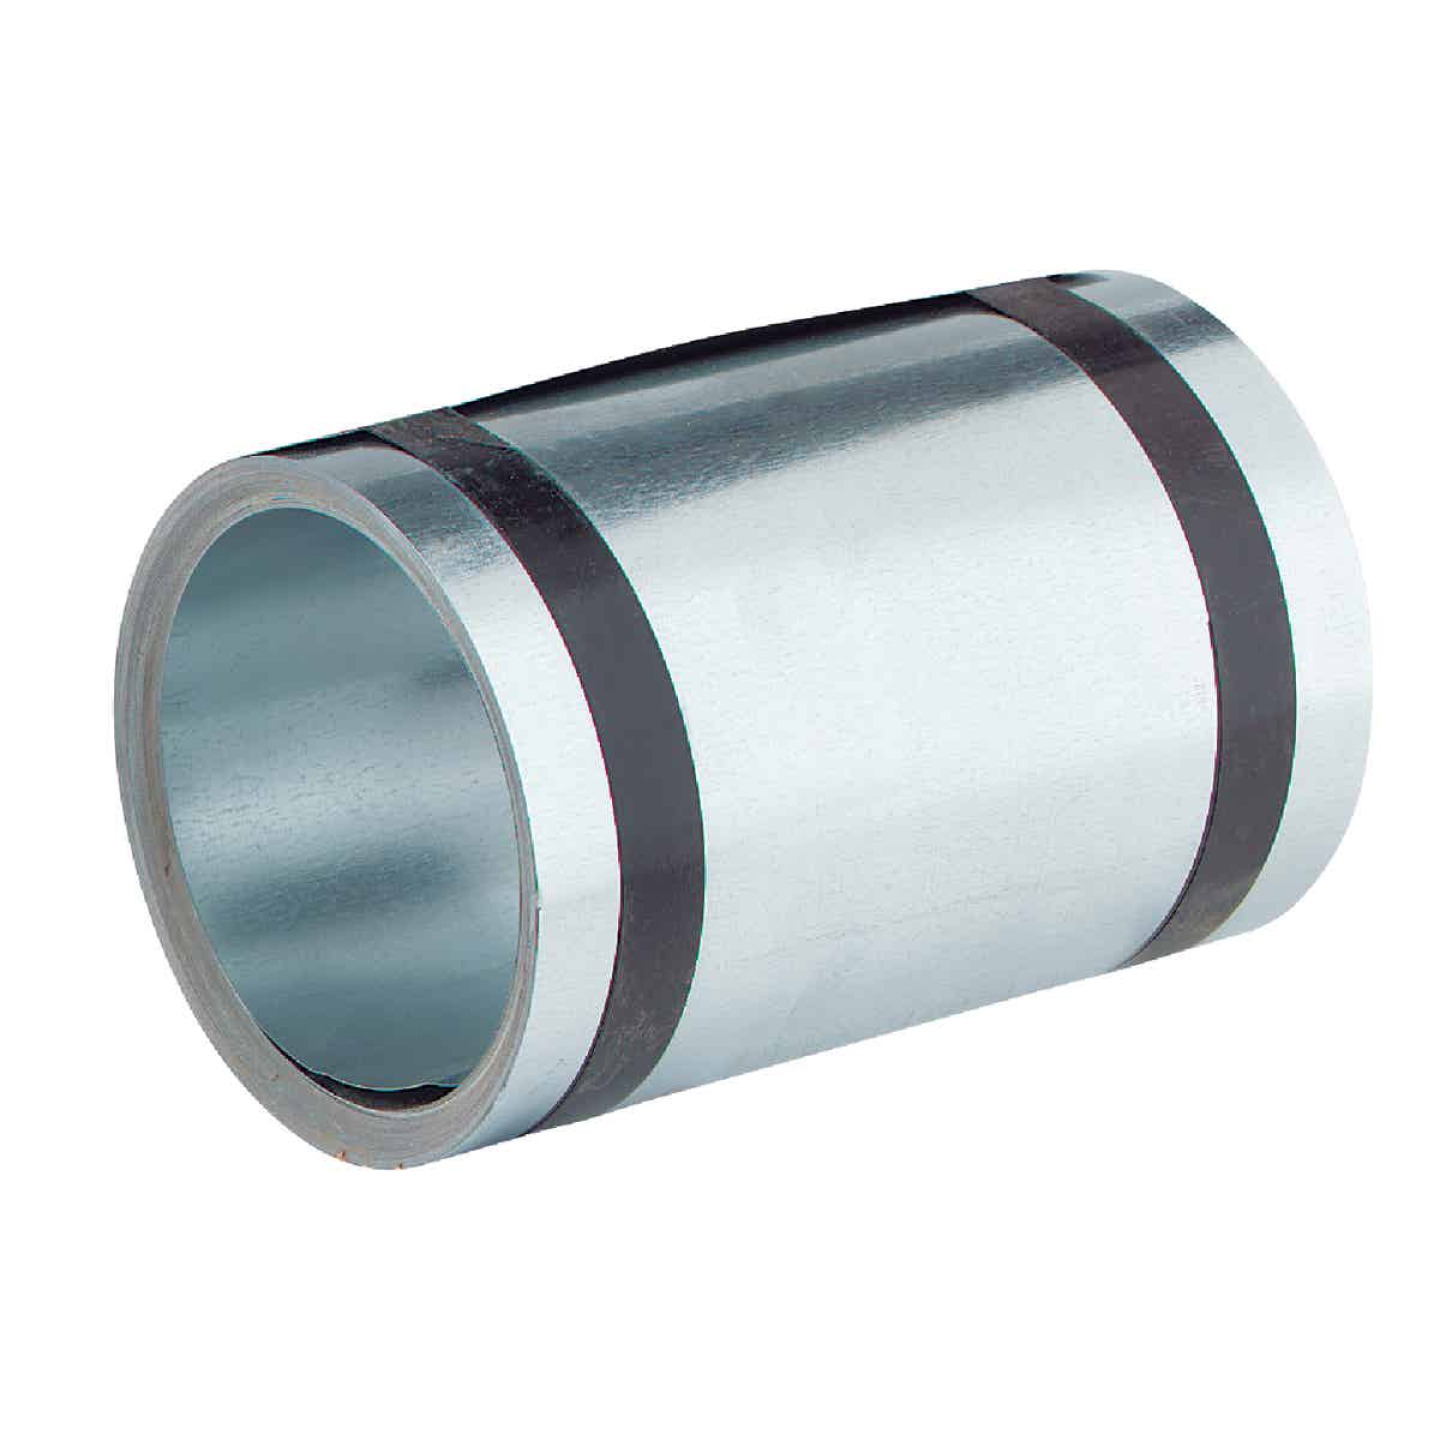 NorWesco 7 In. x 50 Ft. Mill Galvanized Roll Valley Flashing Image 1